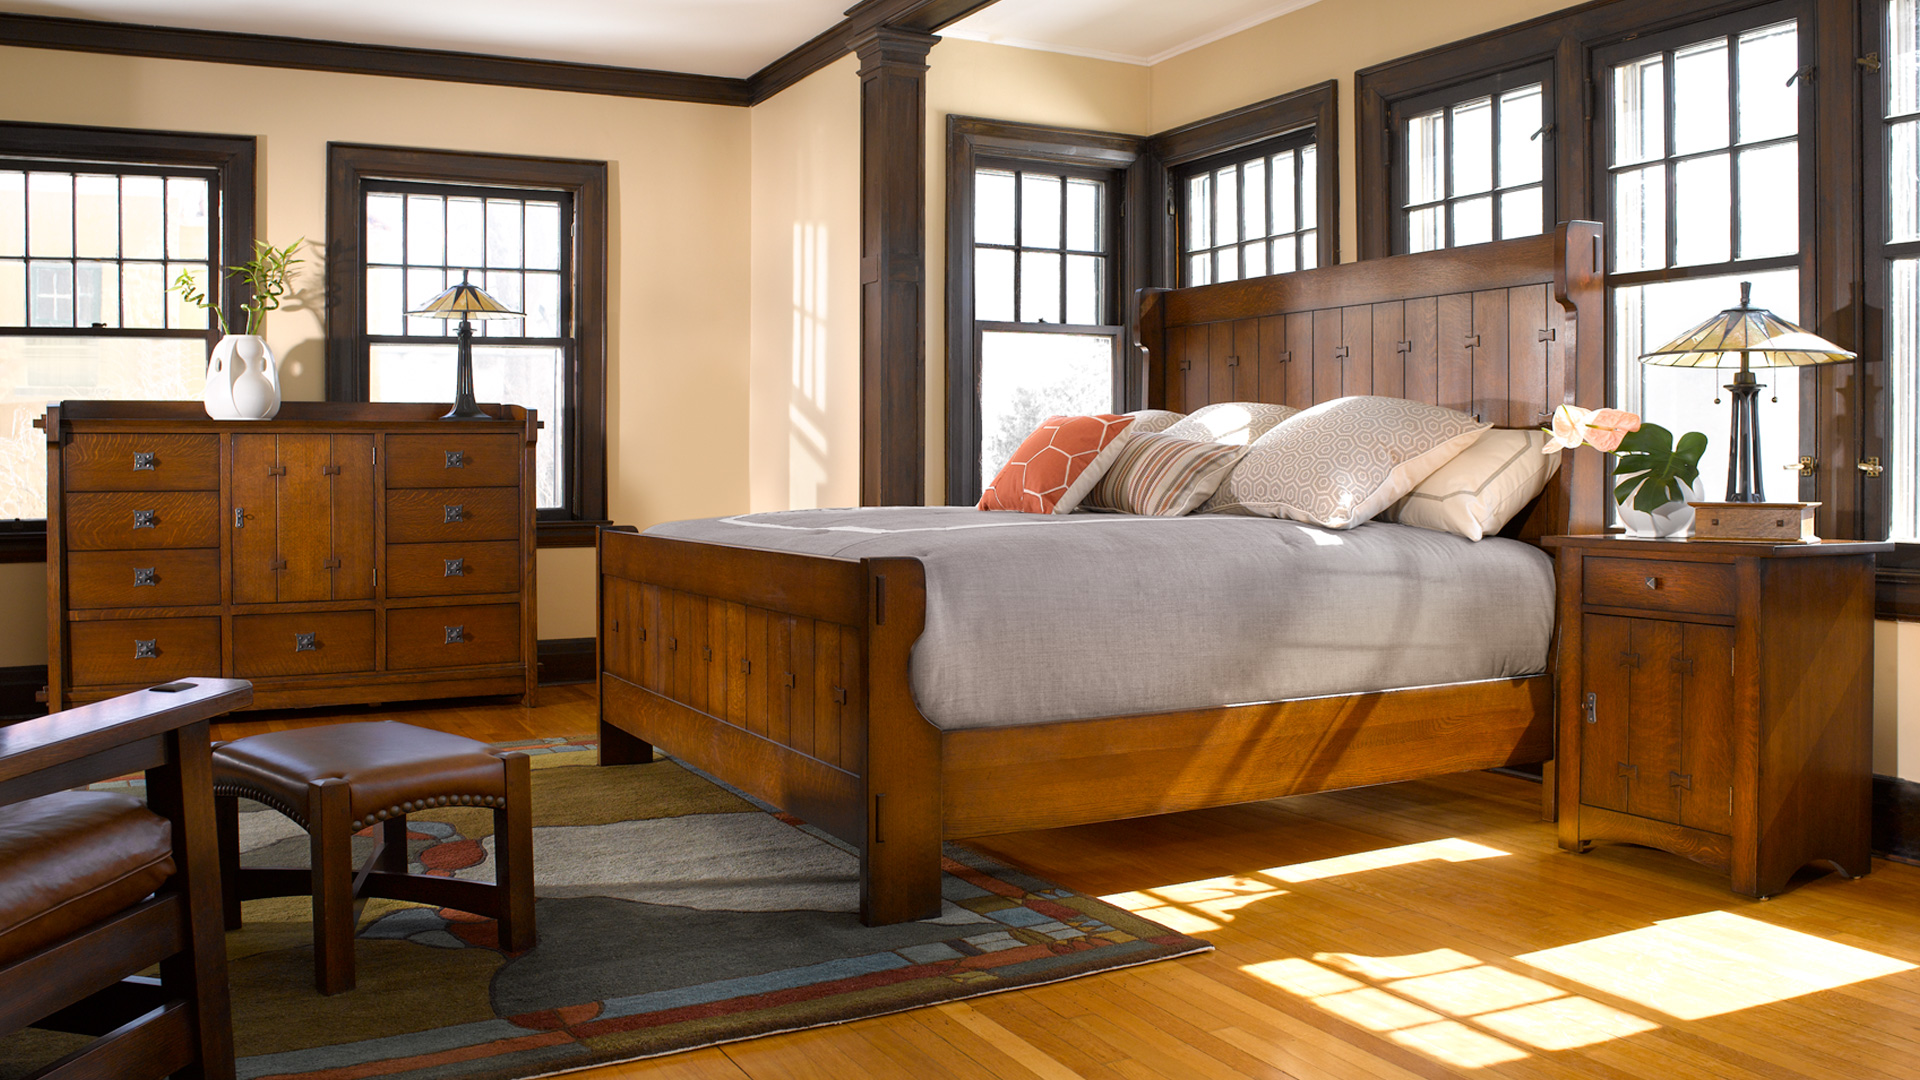 Antonino Barbagallo Photographer Bedroom Furniture From Stickley Furniture